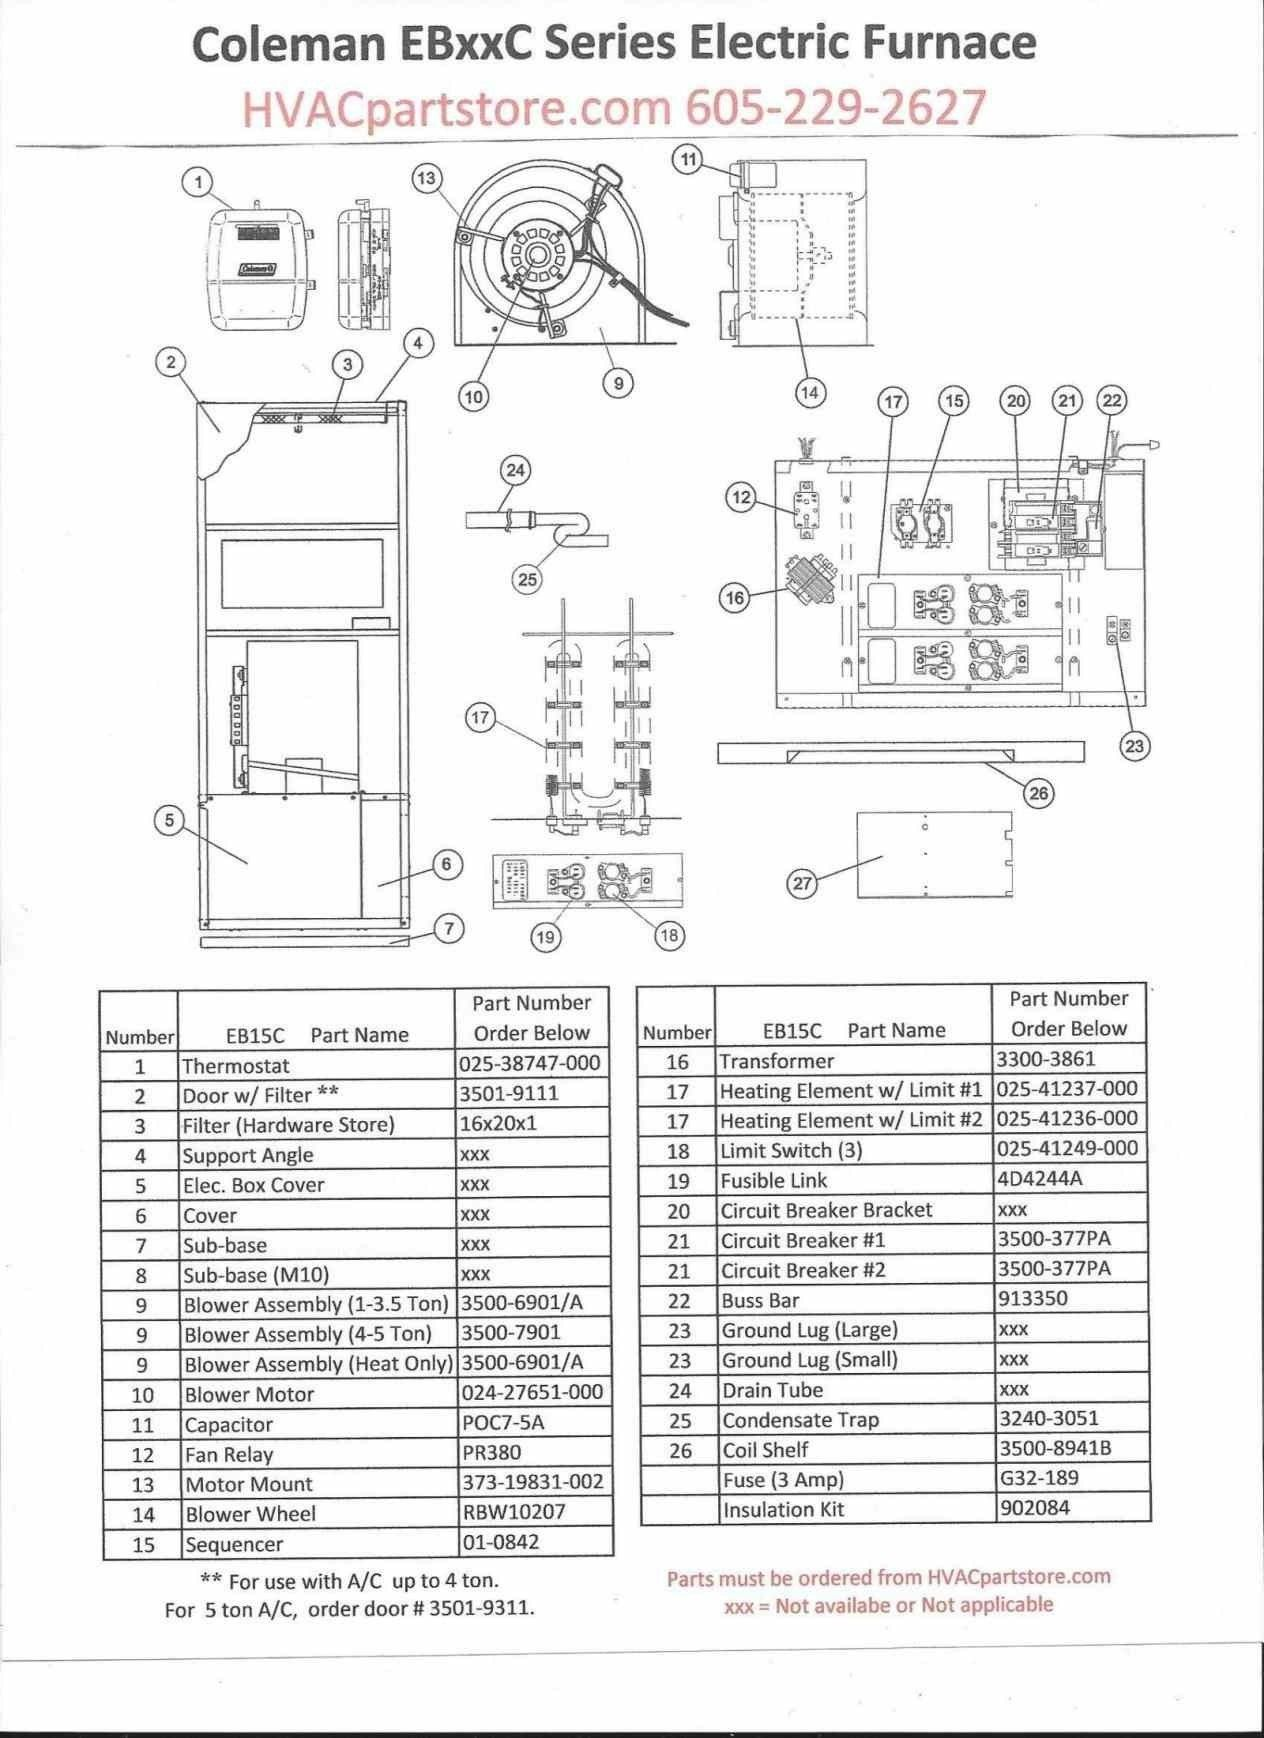 New Wiring Diagram Ac Mobil #diagramsample #diagramformats ... on flexible underground conduit wiring, diode wiring, refrigerator wiring, mc wiring, electric guitar wiring, trailer wiring, circuit wiring, air conditioner compressor wiring, safety damaged wiring, dodge wiring, ceiling fan speed control wiring, motion sensor wiring, a light switch wiring, alternator wiring, sub panel wiring, tstat wiring,